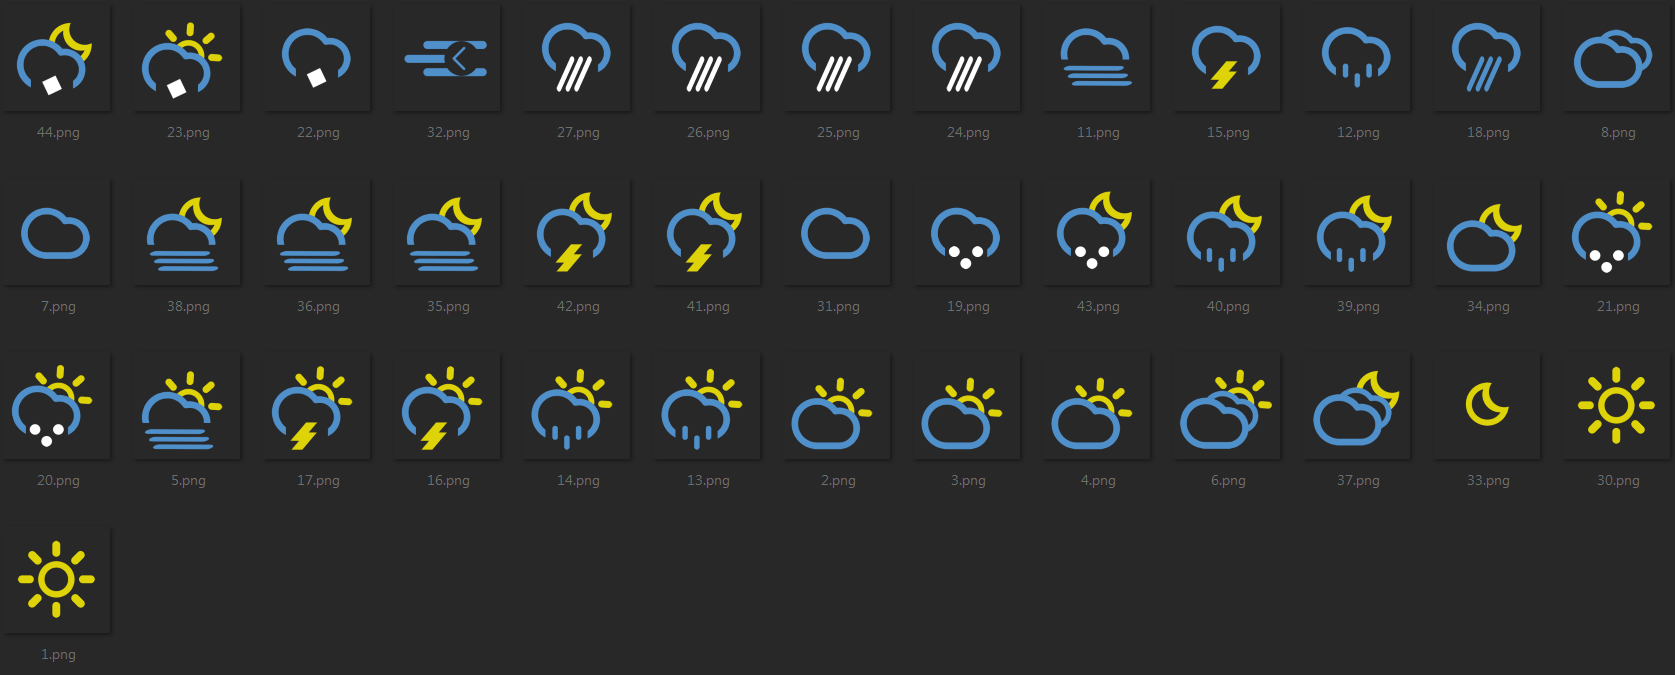 Tchiro 13 9 Weather Icons Xwidget By Tchiro